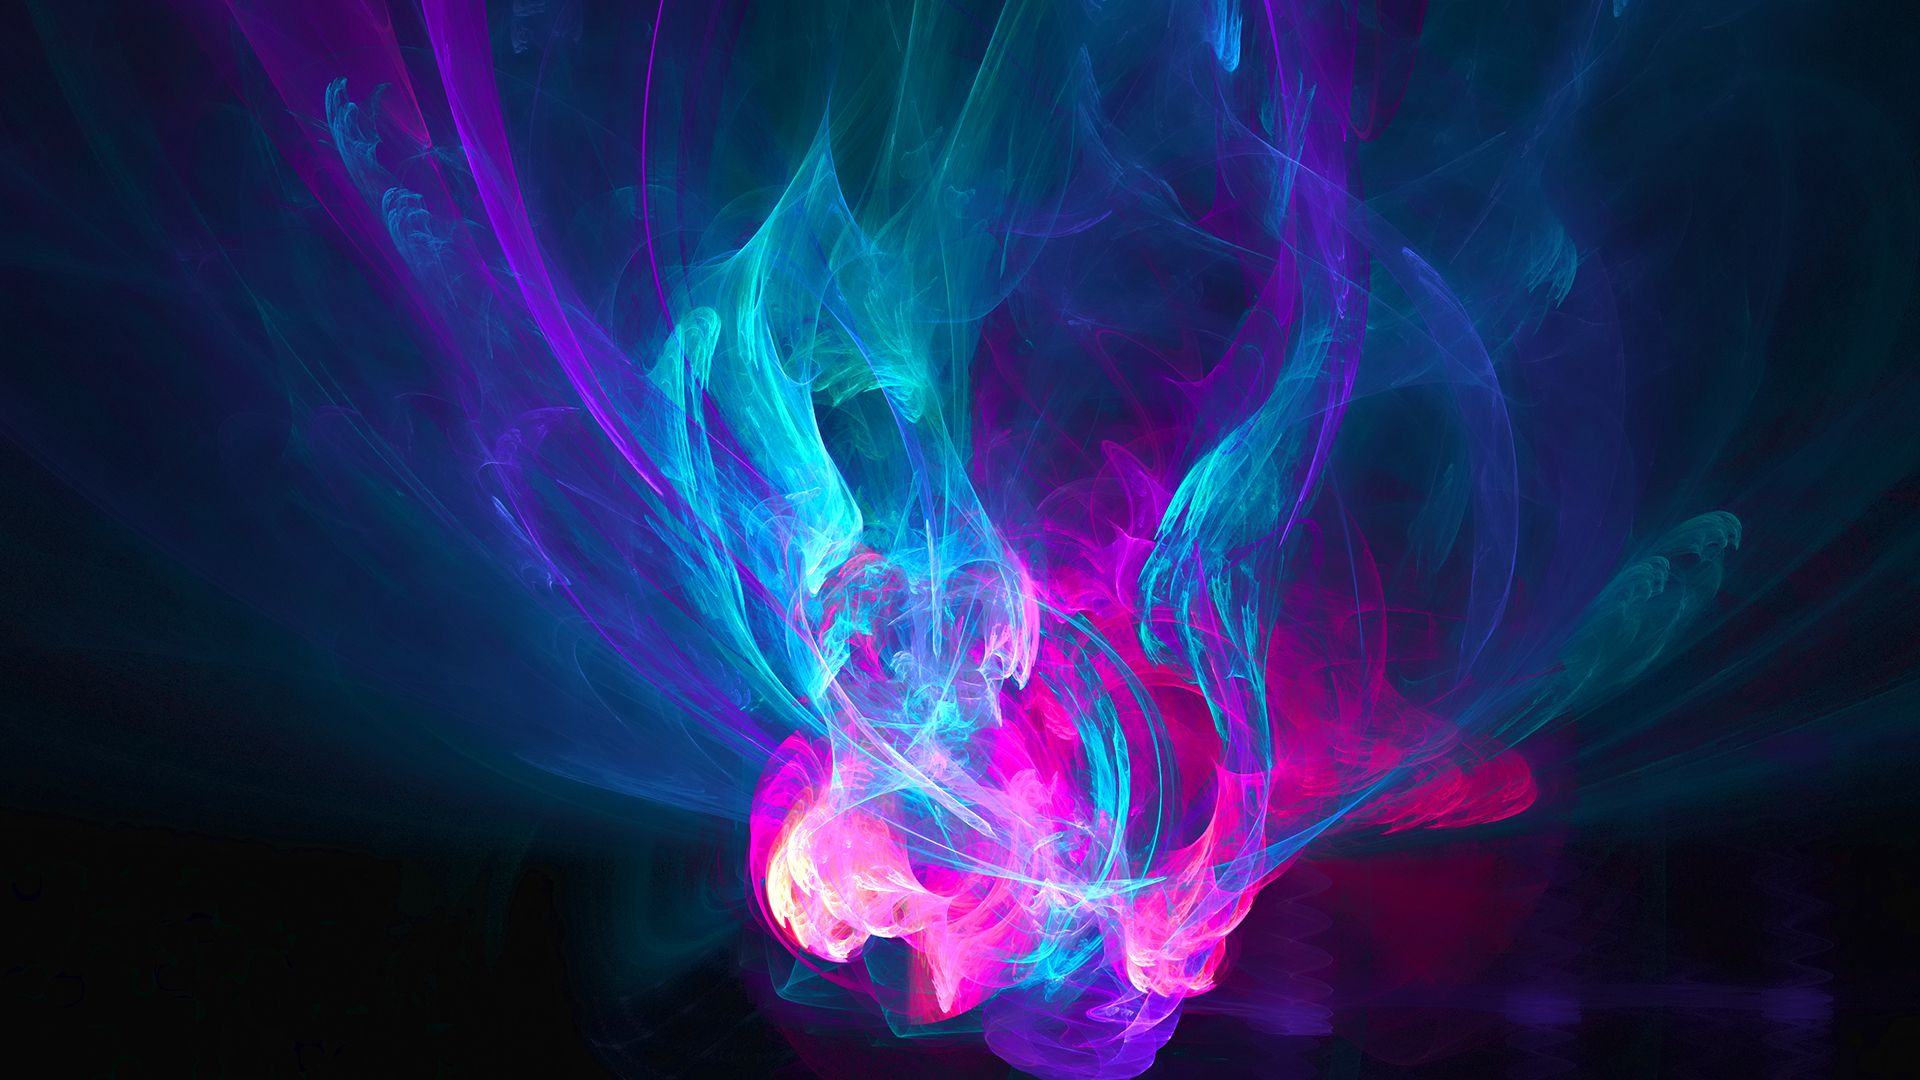 Abstract Fire Pink Blue Purple Patterns Hd Wallpaper